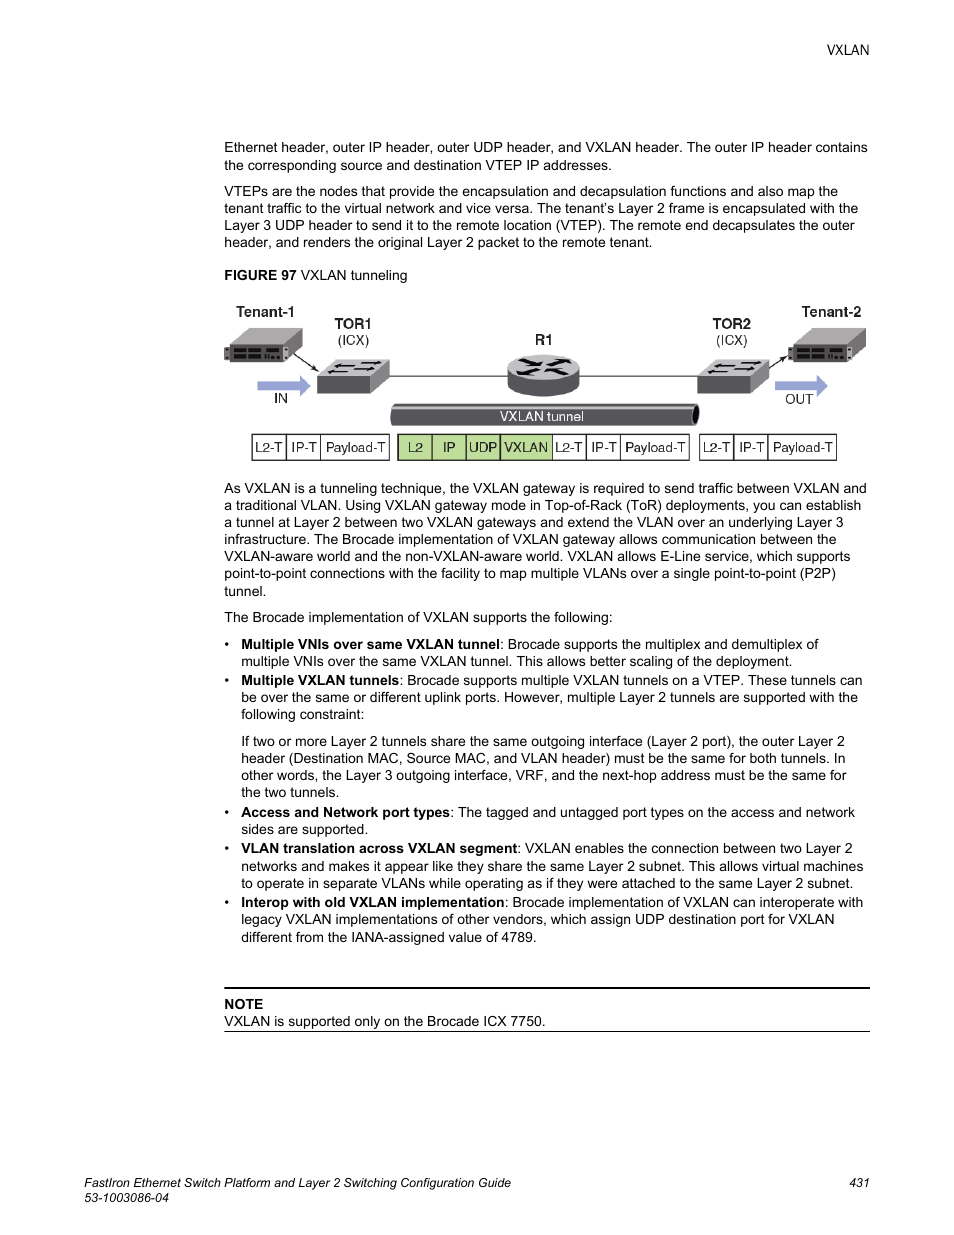 Brocade FastIron Ethernet Switch Platform and Layer 2 Switching